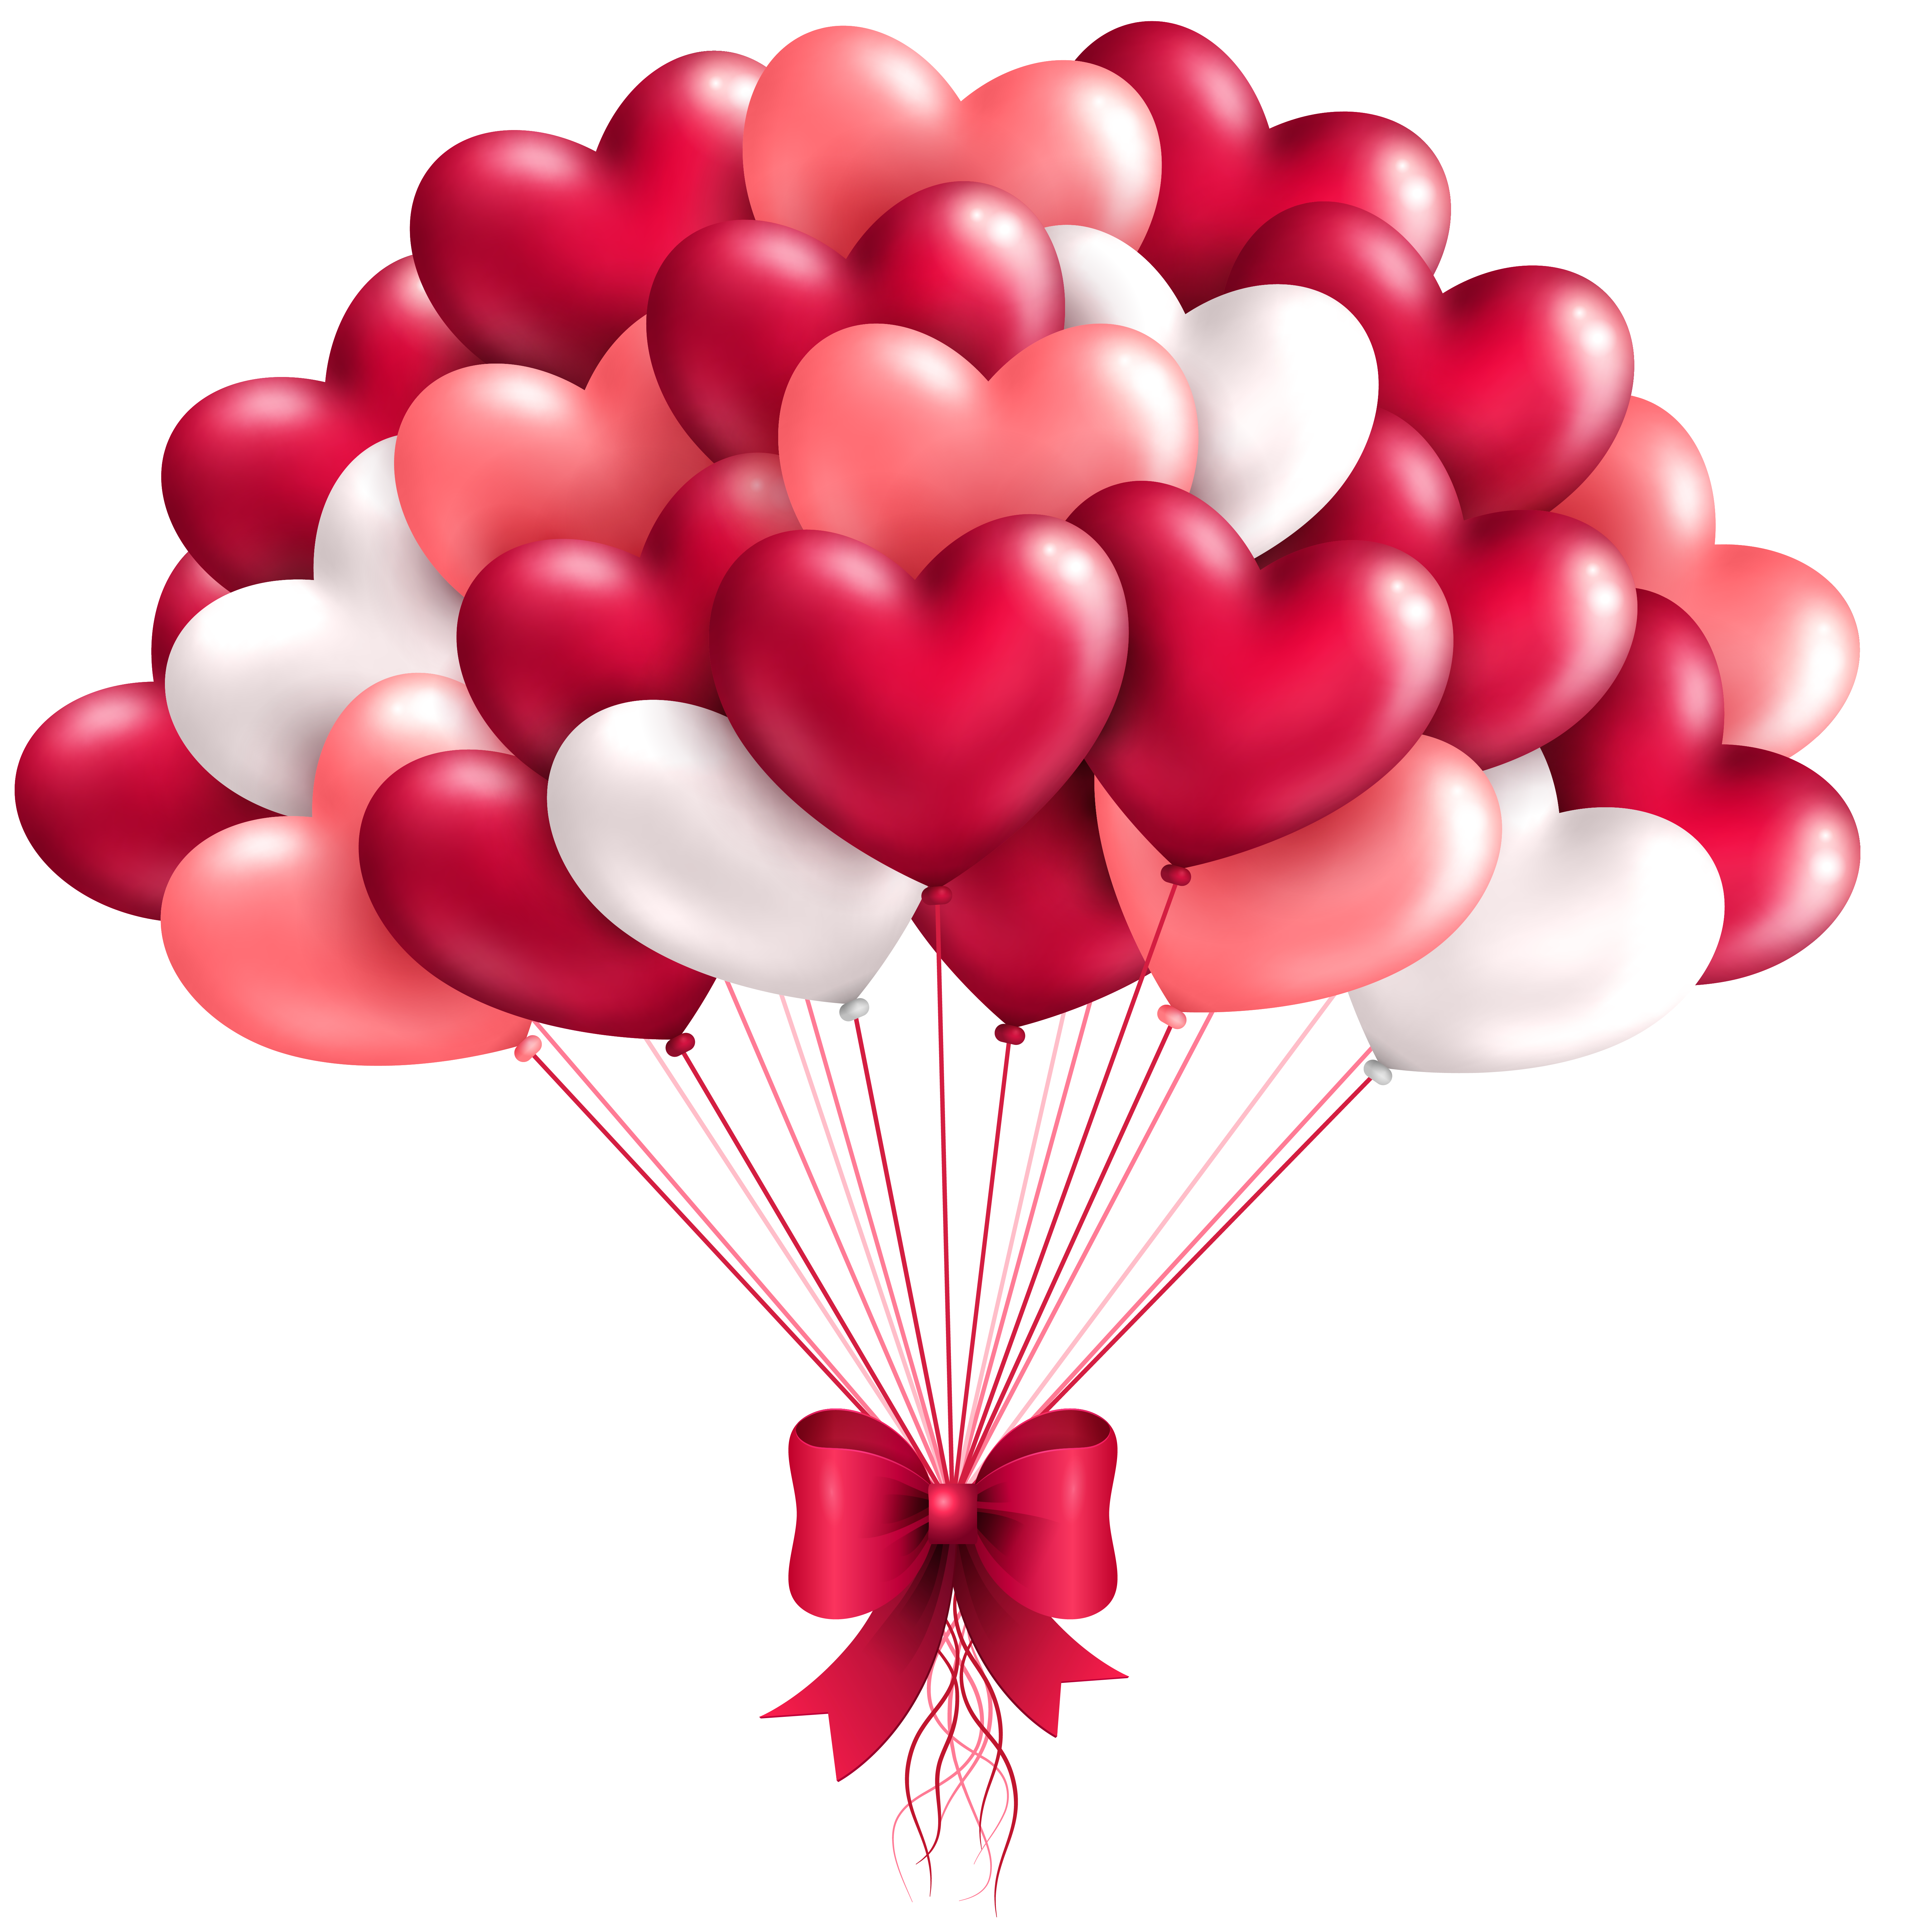 Beautiful balloons png image. Clipart birthday heart